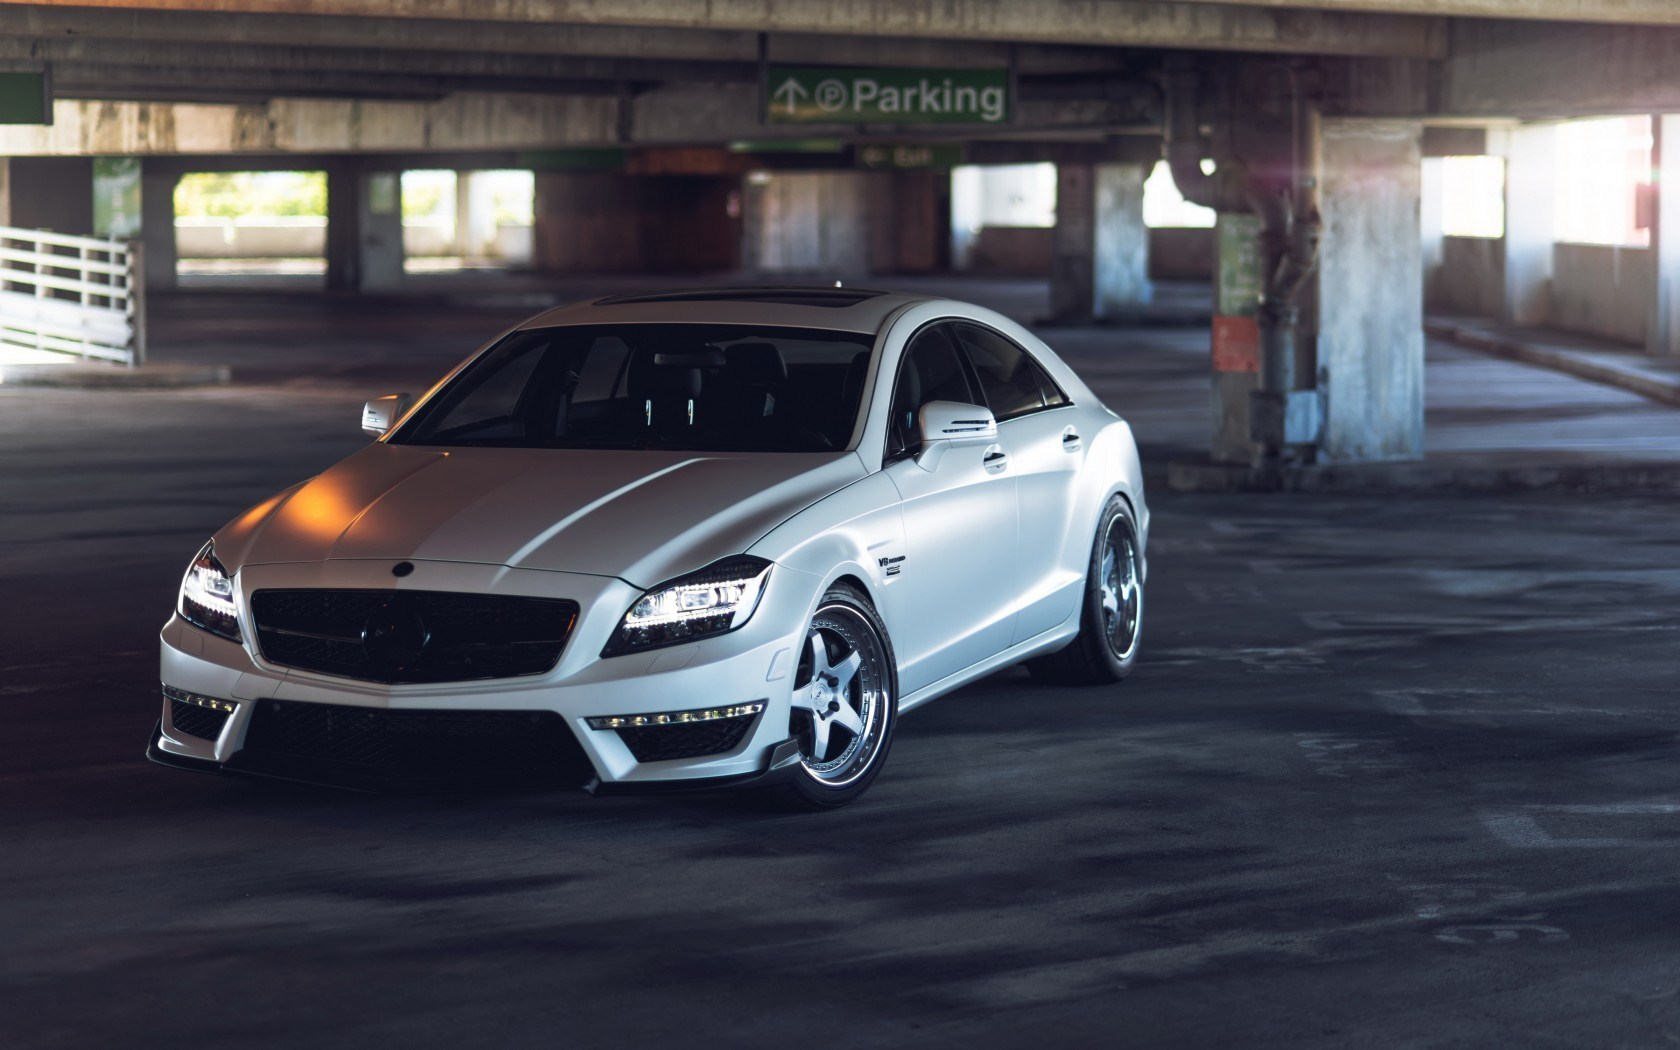 Mercedes-Benz CLS Car Parking